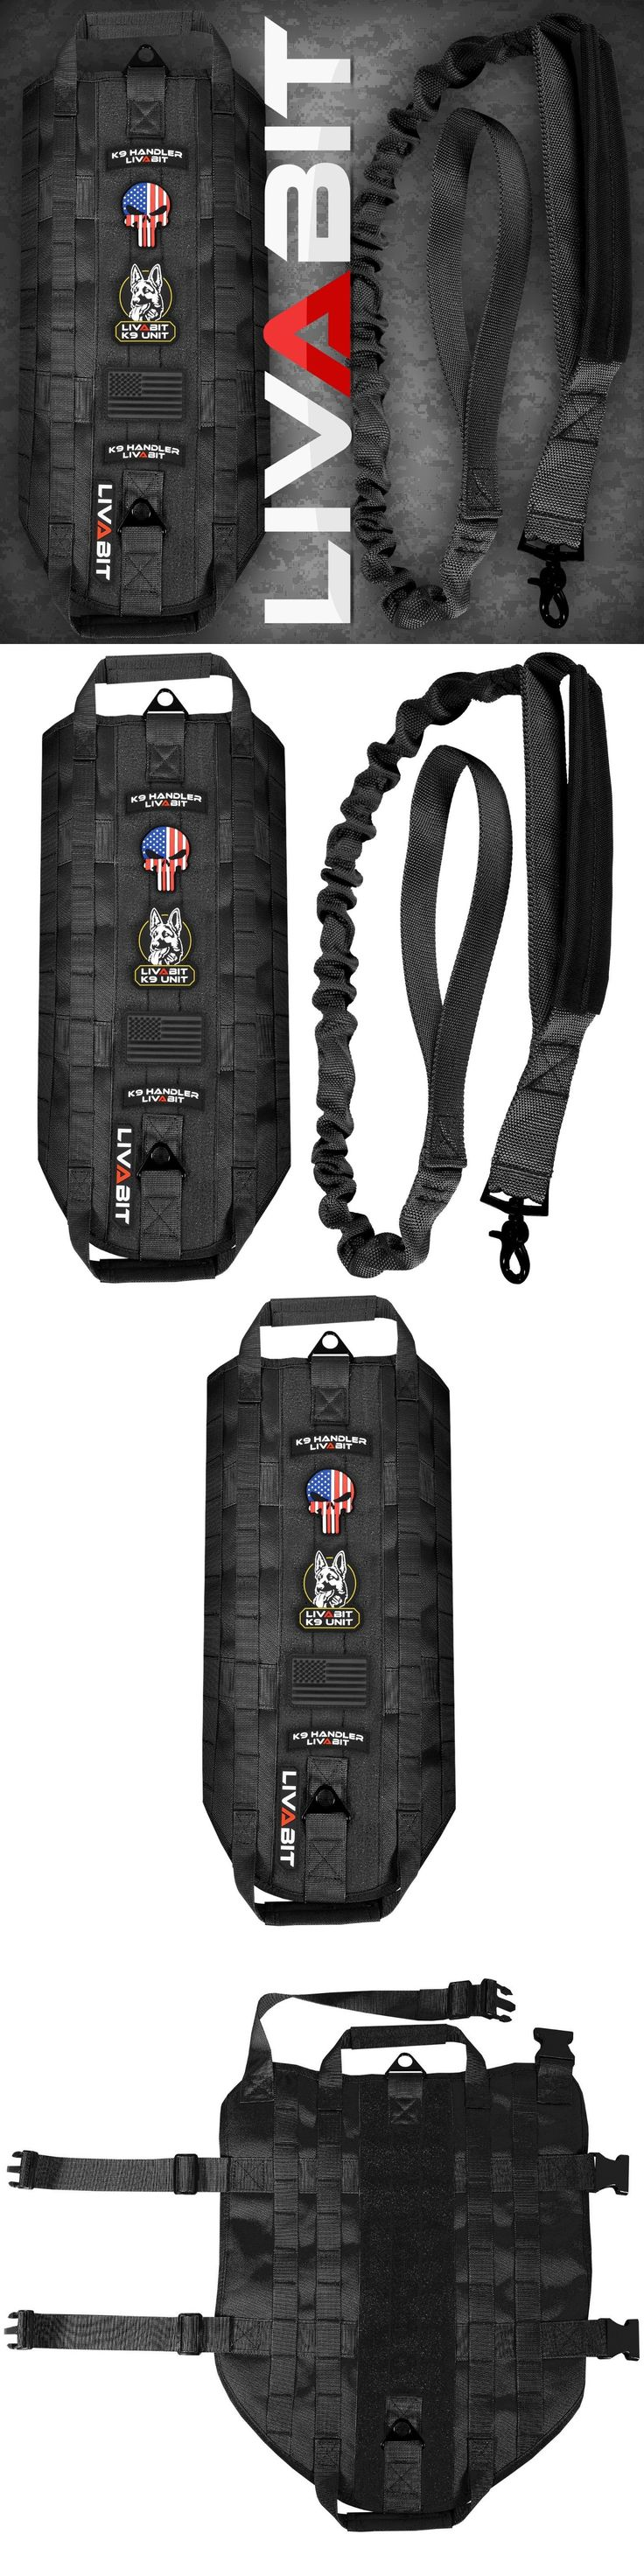 Harnesses 66783: Livabit K9 Dog Tactical Vest Harness Pvc Patch Heavy Duty Bungee Leash Blk Large -> BUY IT NOW ONLY: $47.98 on eBay!